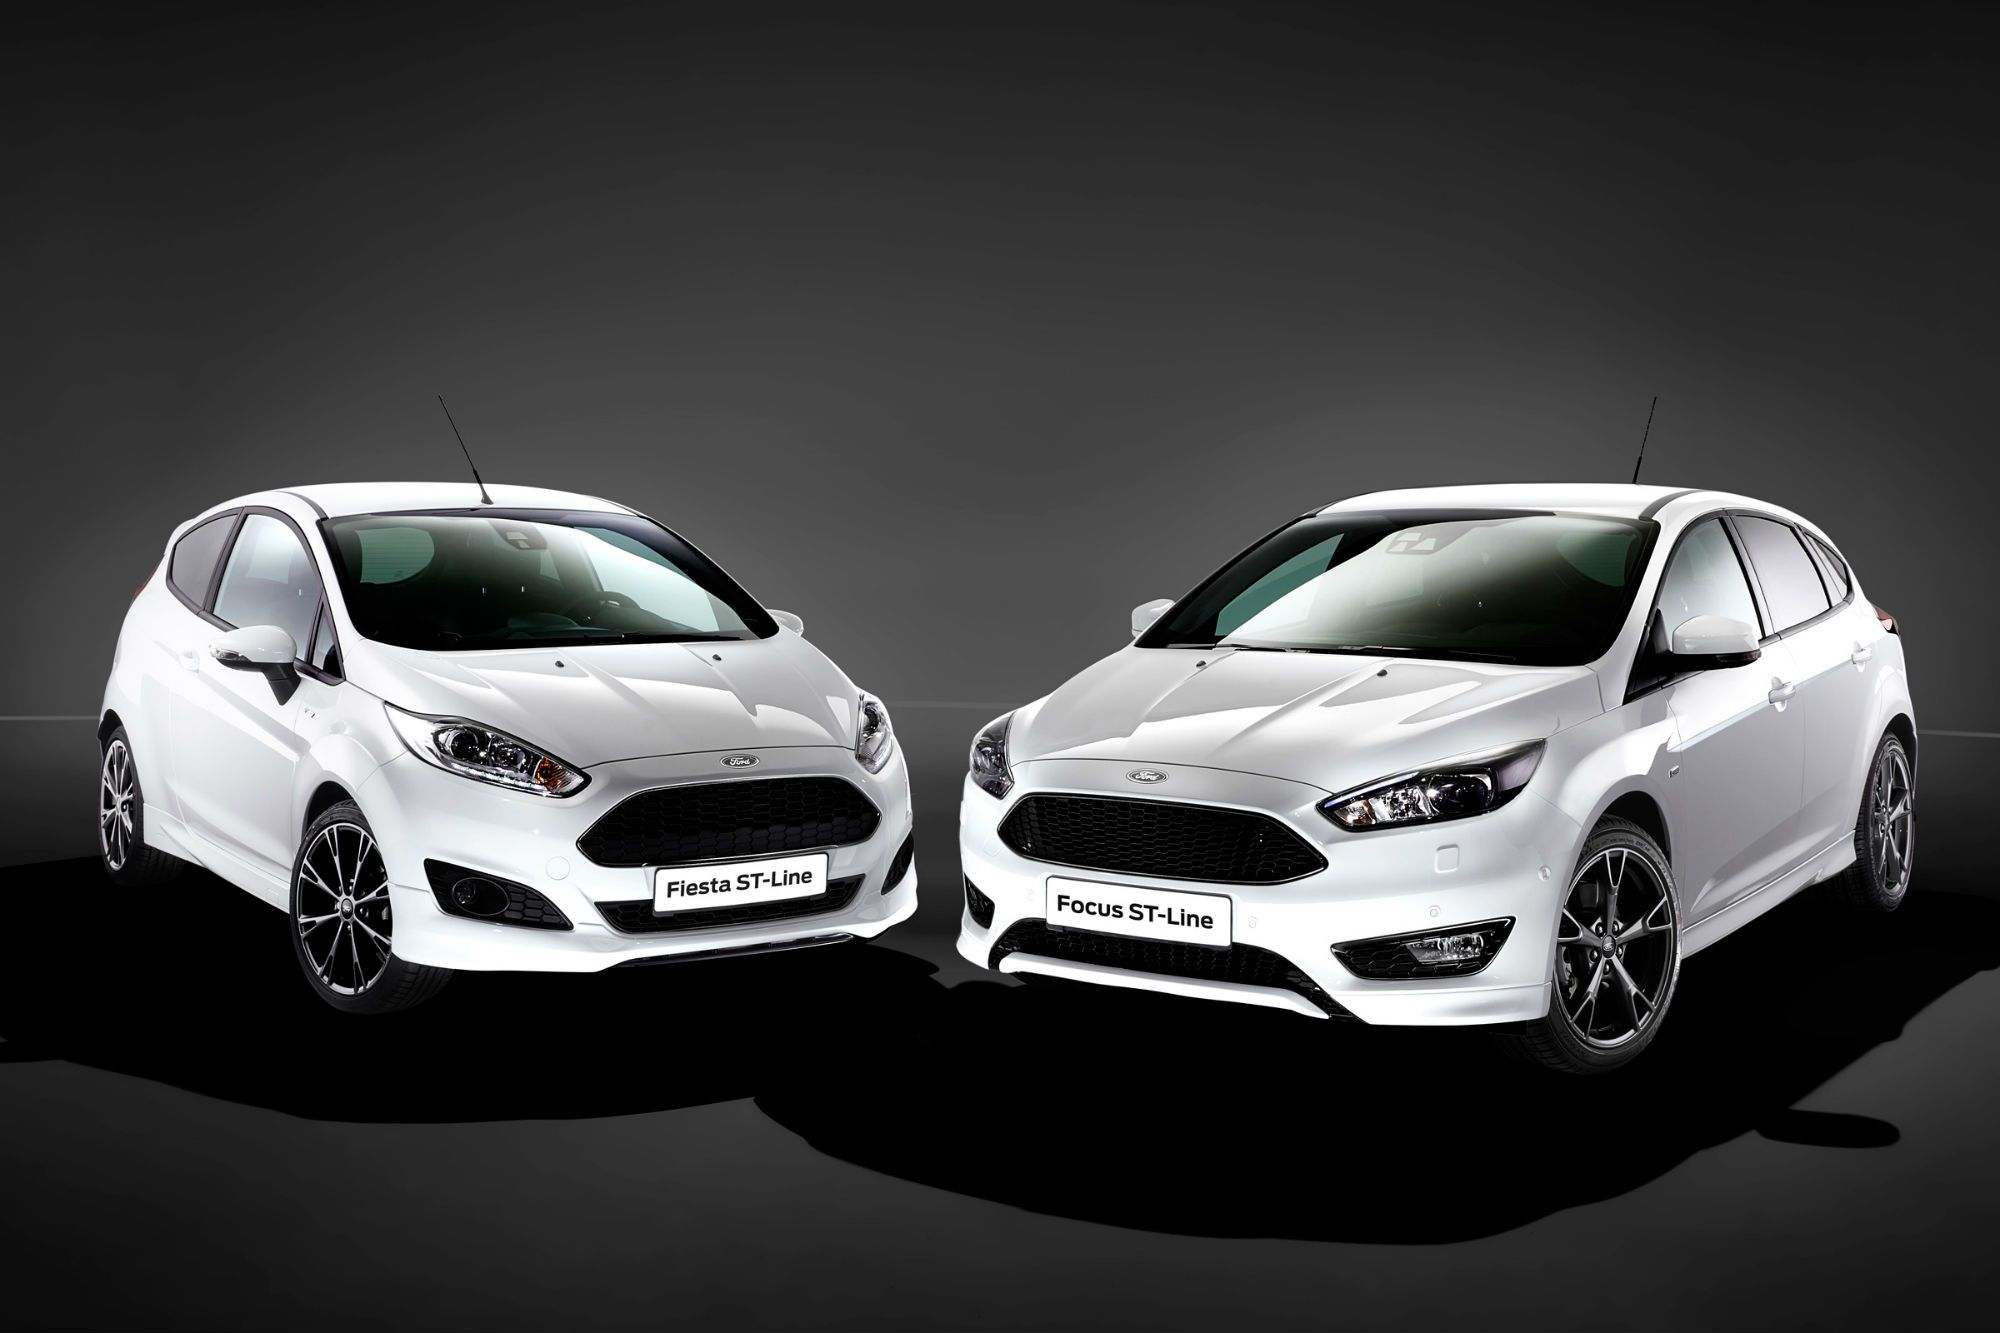 Goodbye Zetec S Hello New St Line Trim Ford Ford Focus Ford Cars Uk